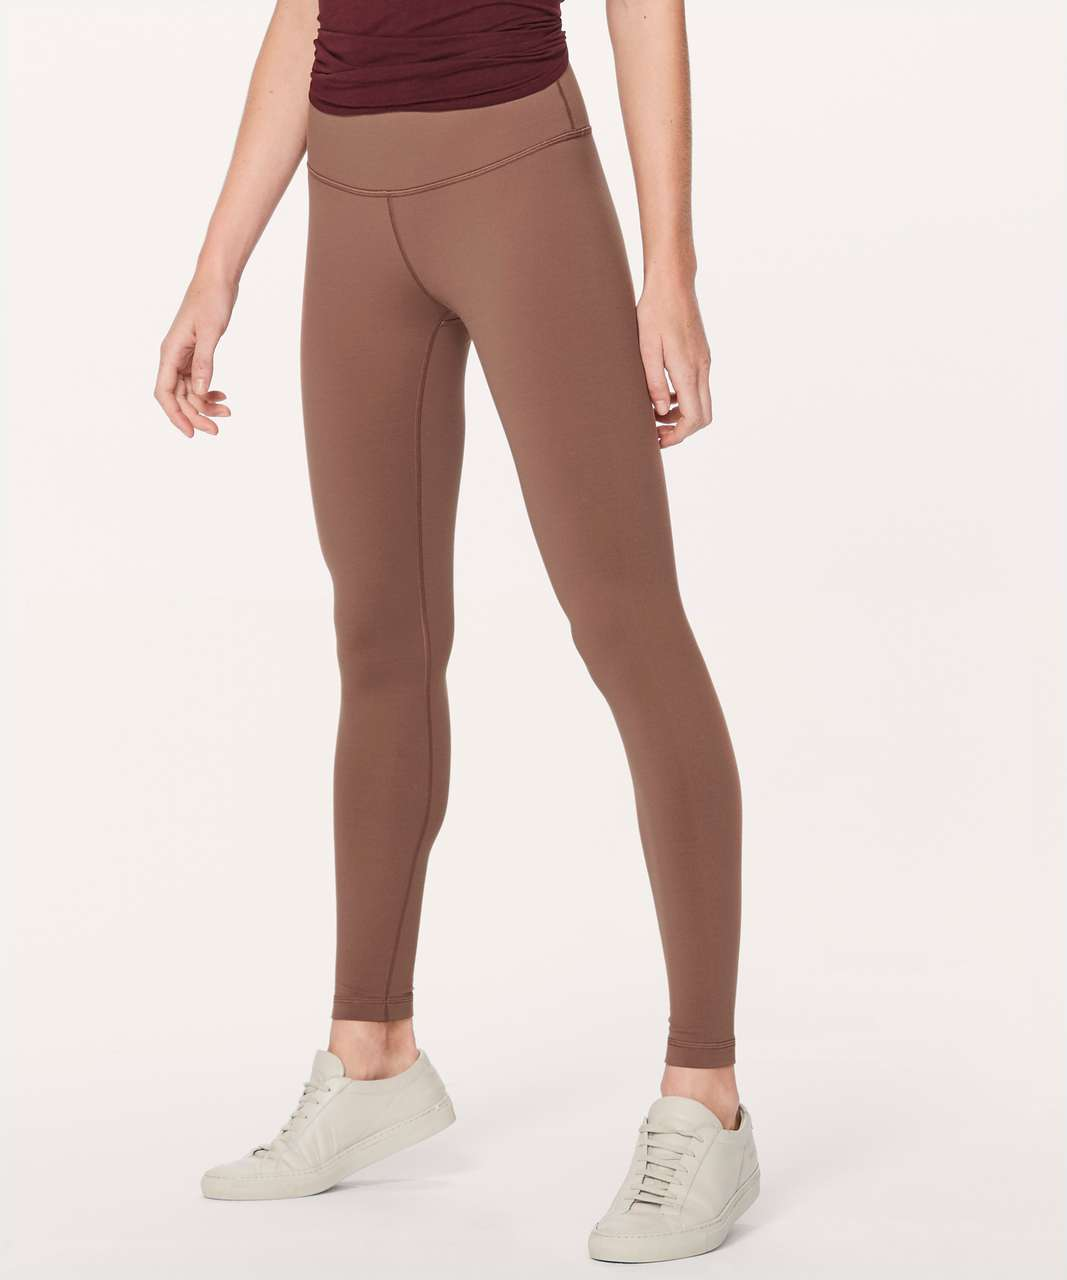 "Lululemon Wunder Under Hi-Rise Tight Full-On Luon 28"" - Henna"